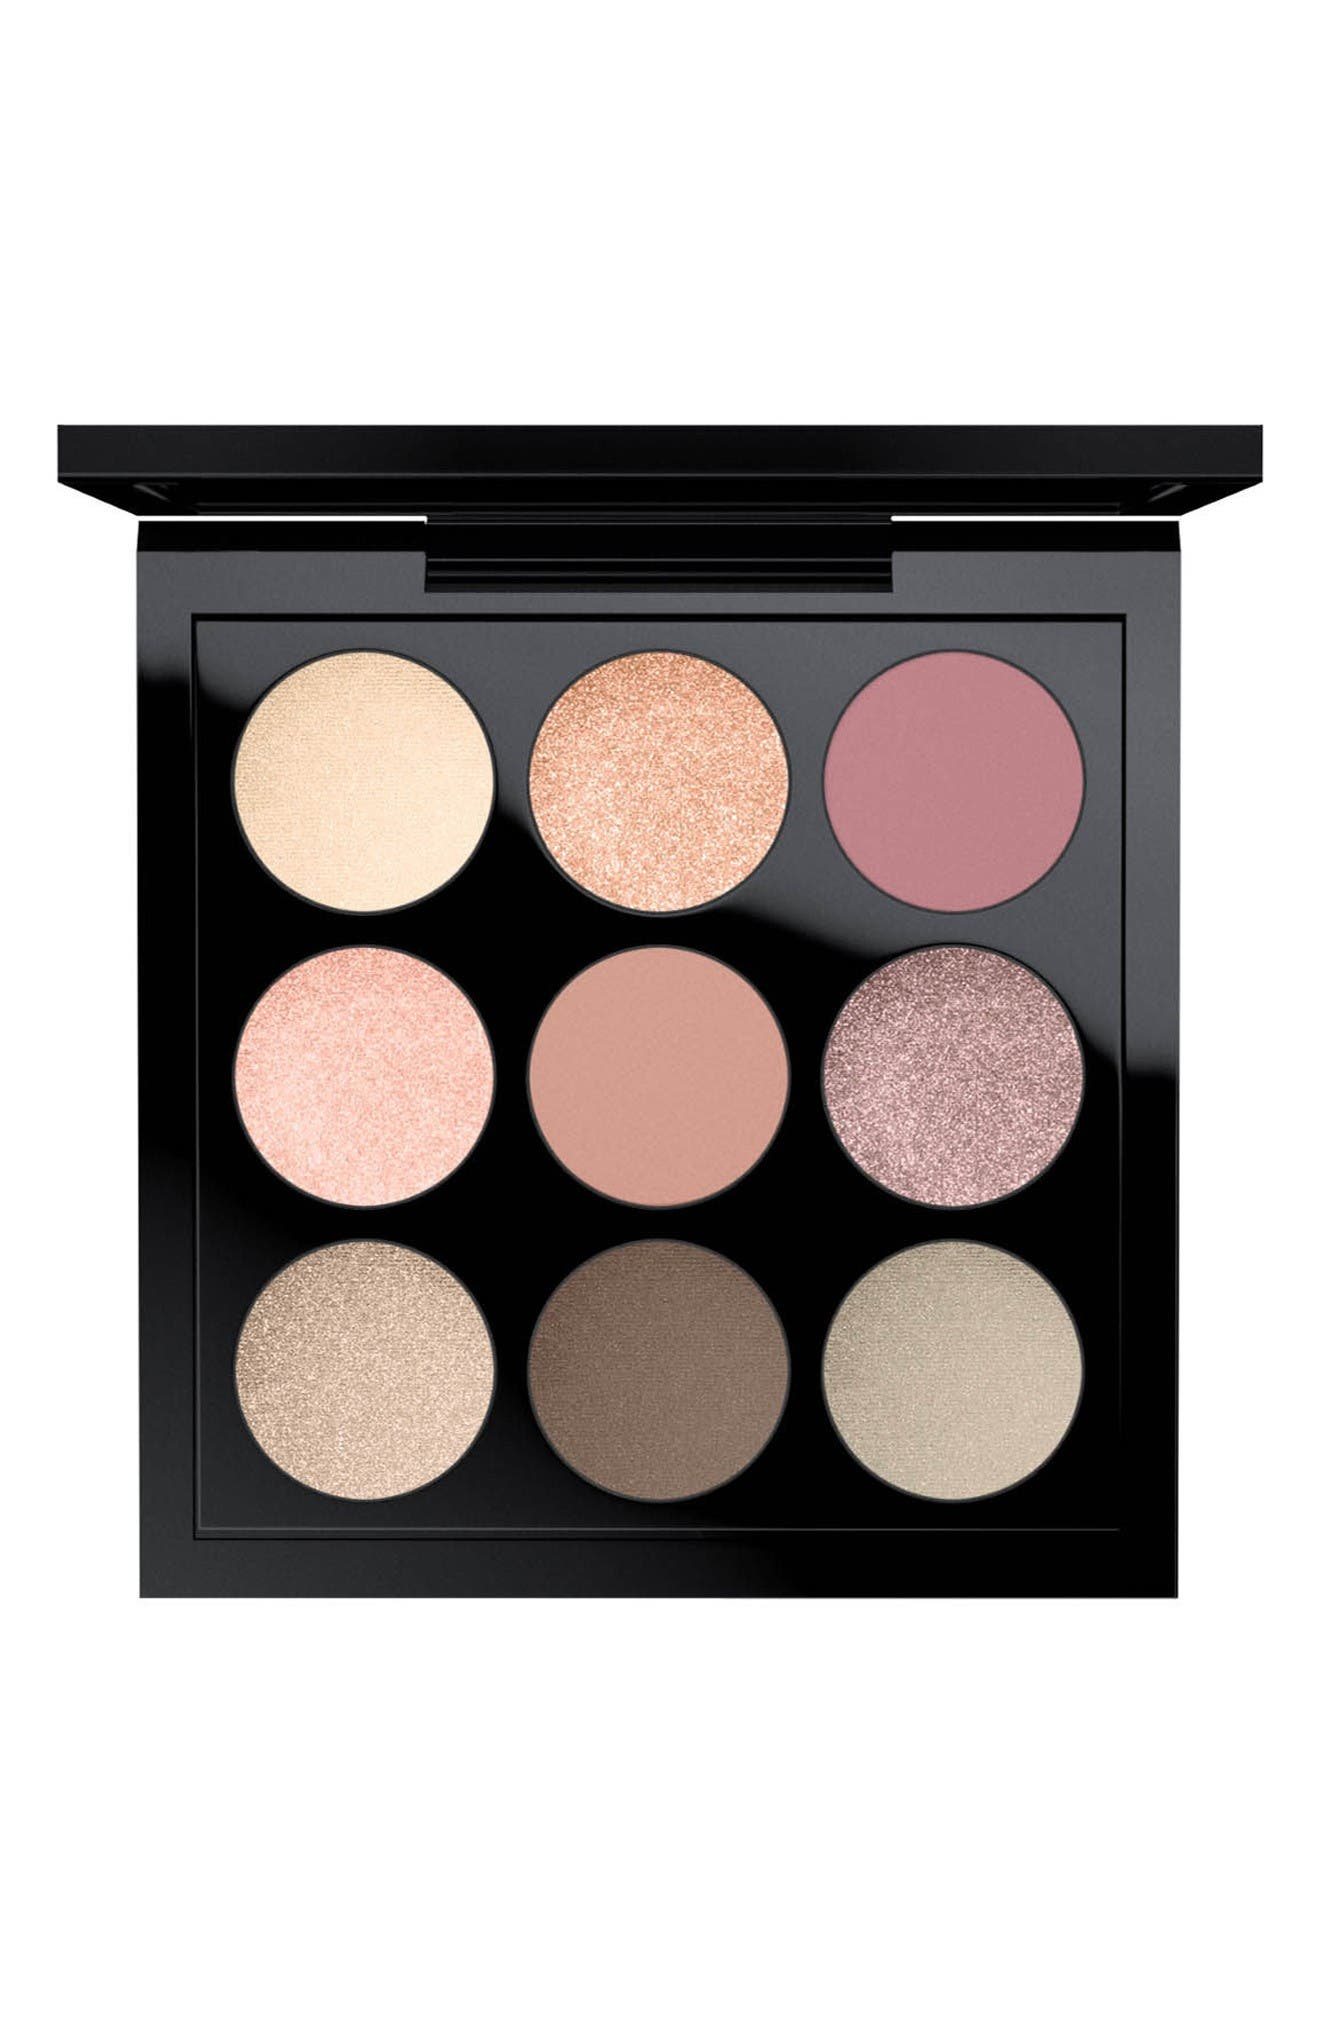 MAC Solar Glow Times Nine Eyeshadow Palette ($53 Value)